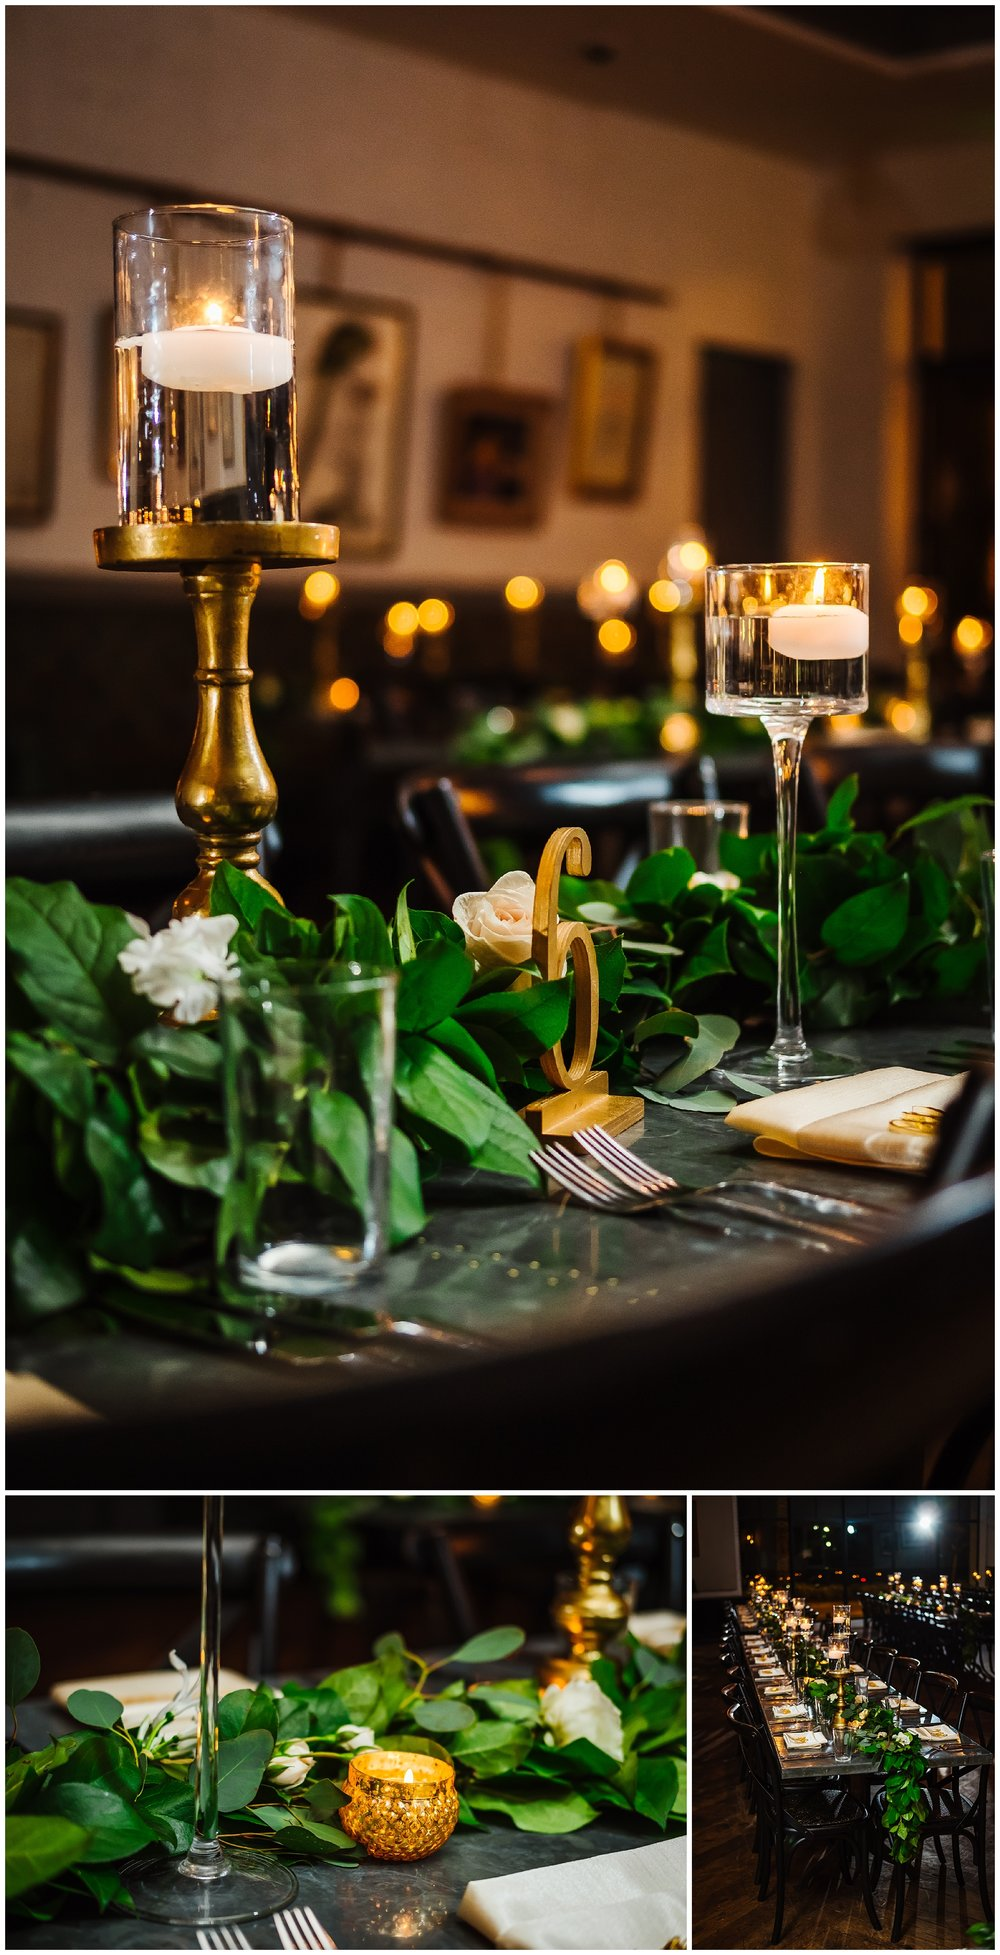 tampa-wedding-photographer-oxford-exchange-garland-candlelight-gold-hayley-paige_0050.jpg